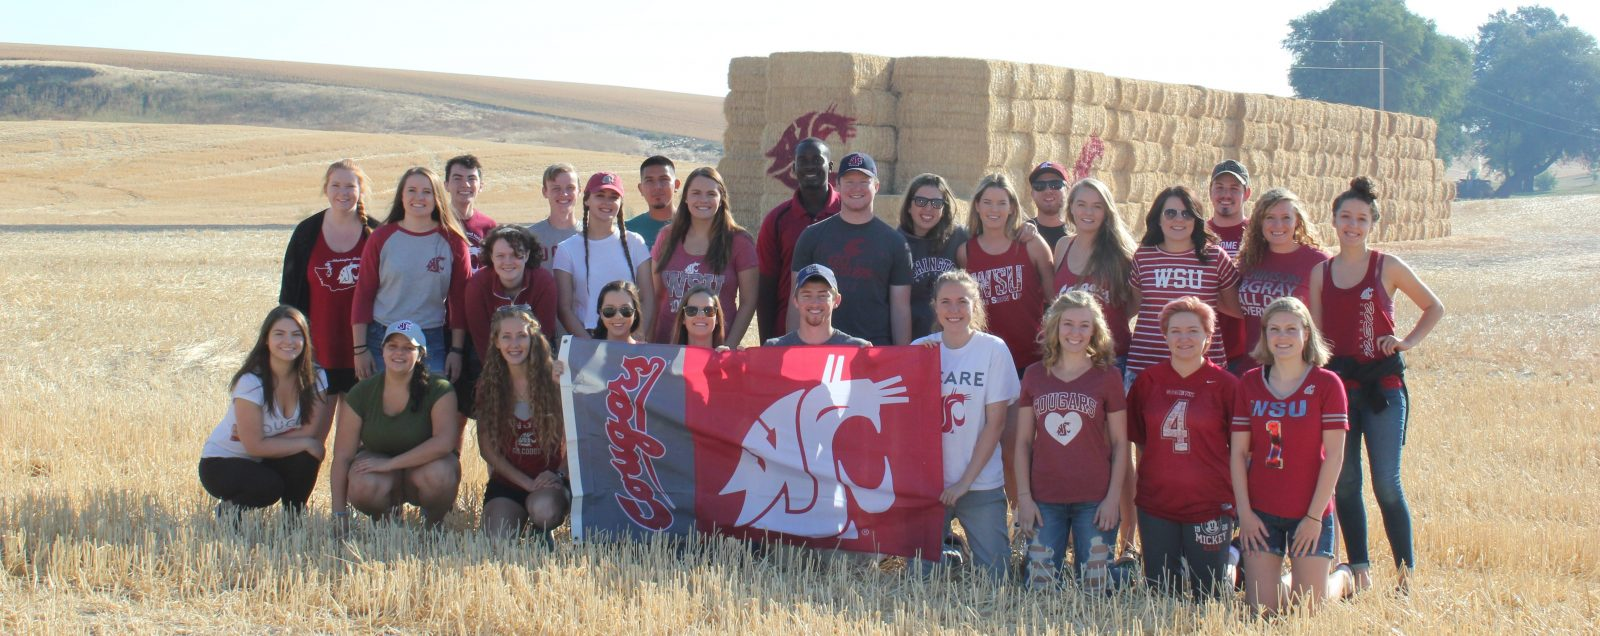 CAHNRS Ambassadors with WSU Flag